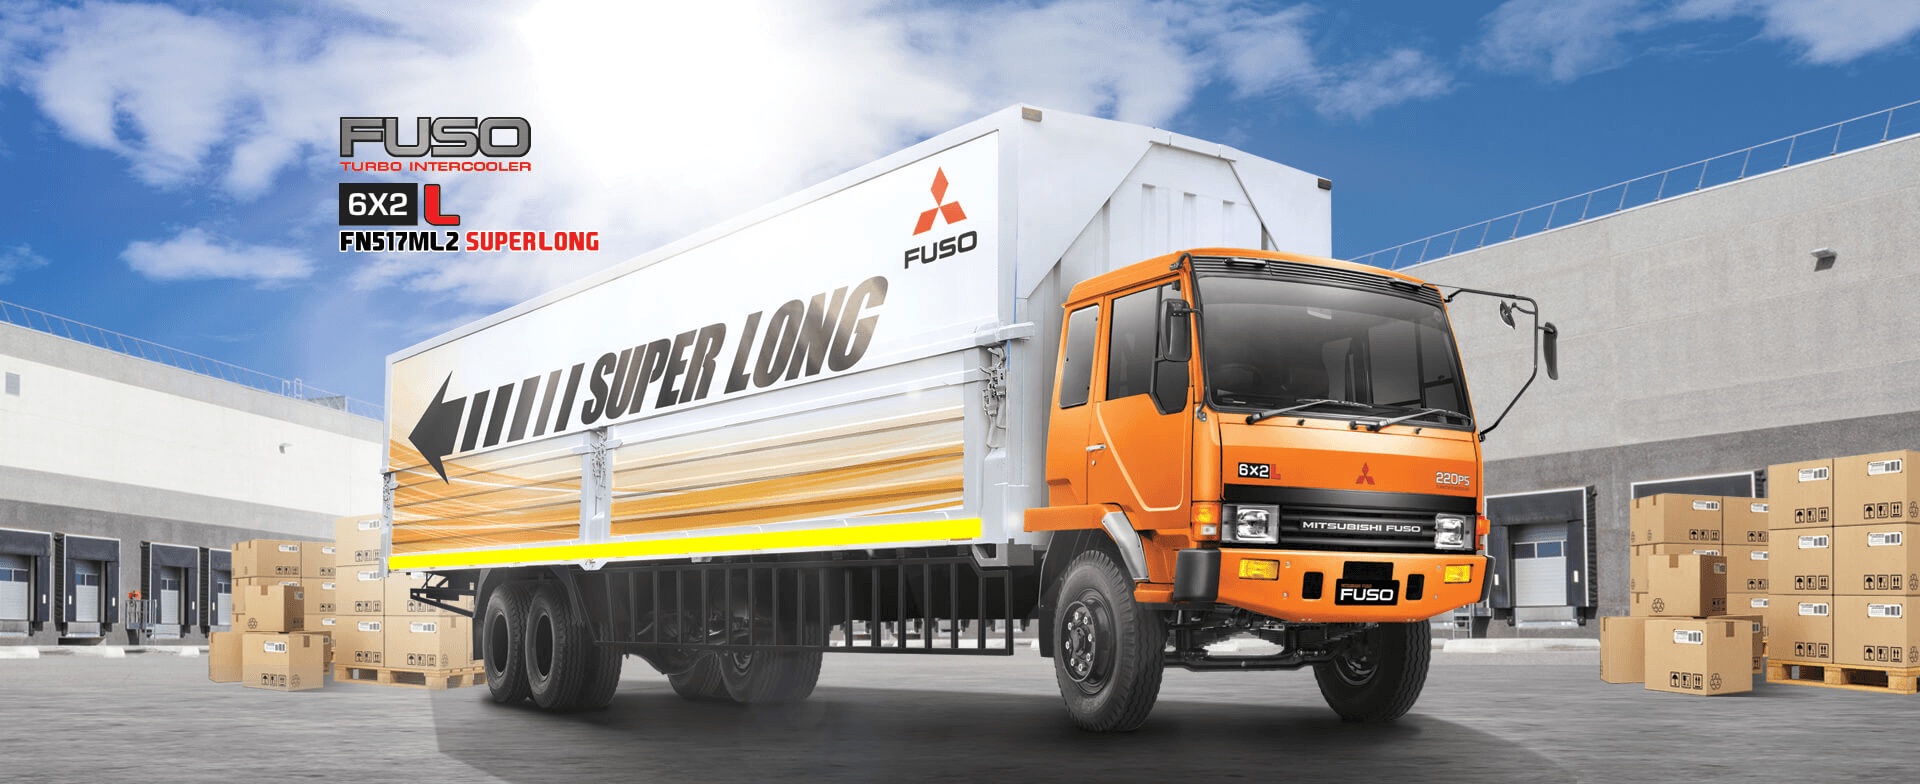 Mitsubishi Fuso FN 517 ML2 SUPER LONG